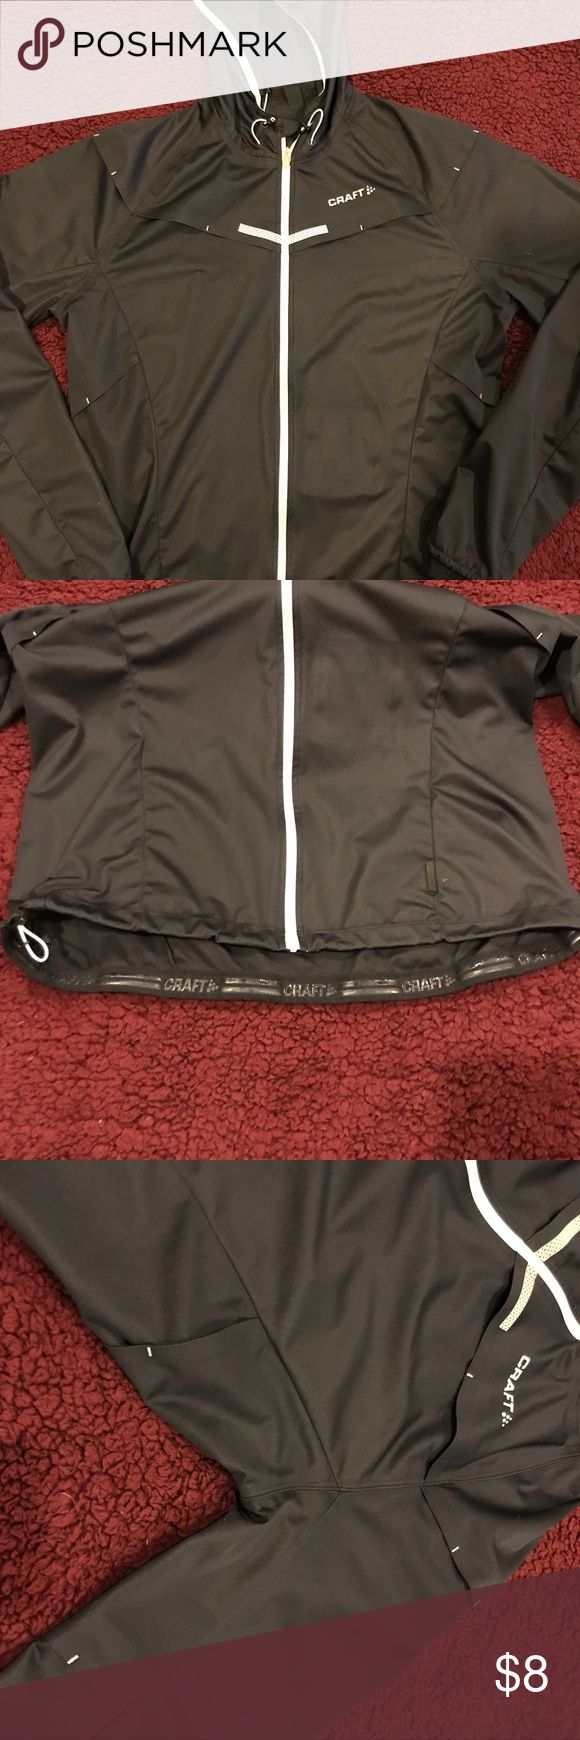 🏃♀️Craft women's running jacket🏃♀️ Women's running jacket. Black with many open side to breath. Draw string on bottom of jacket and hood. The hood can roll and snap on the back of the neck. Super light and easy to take anywhere! Excellent condition only worn a handful of times. Make me an offer🖤 Craft Jackets & Coats Utility Jackets